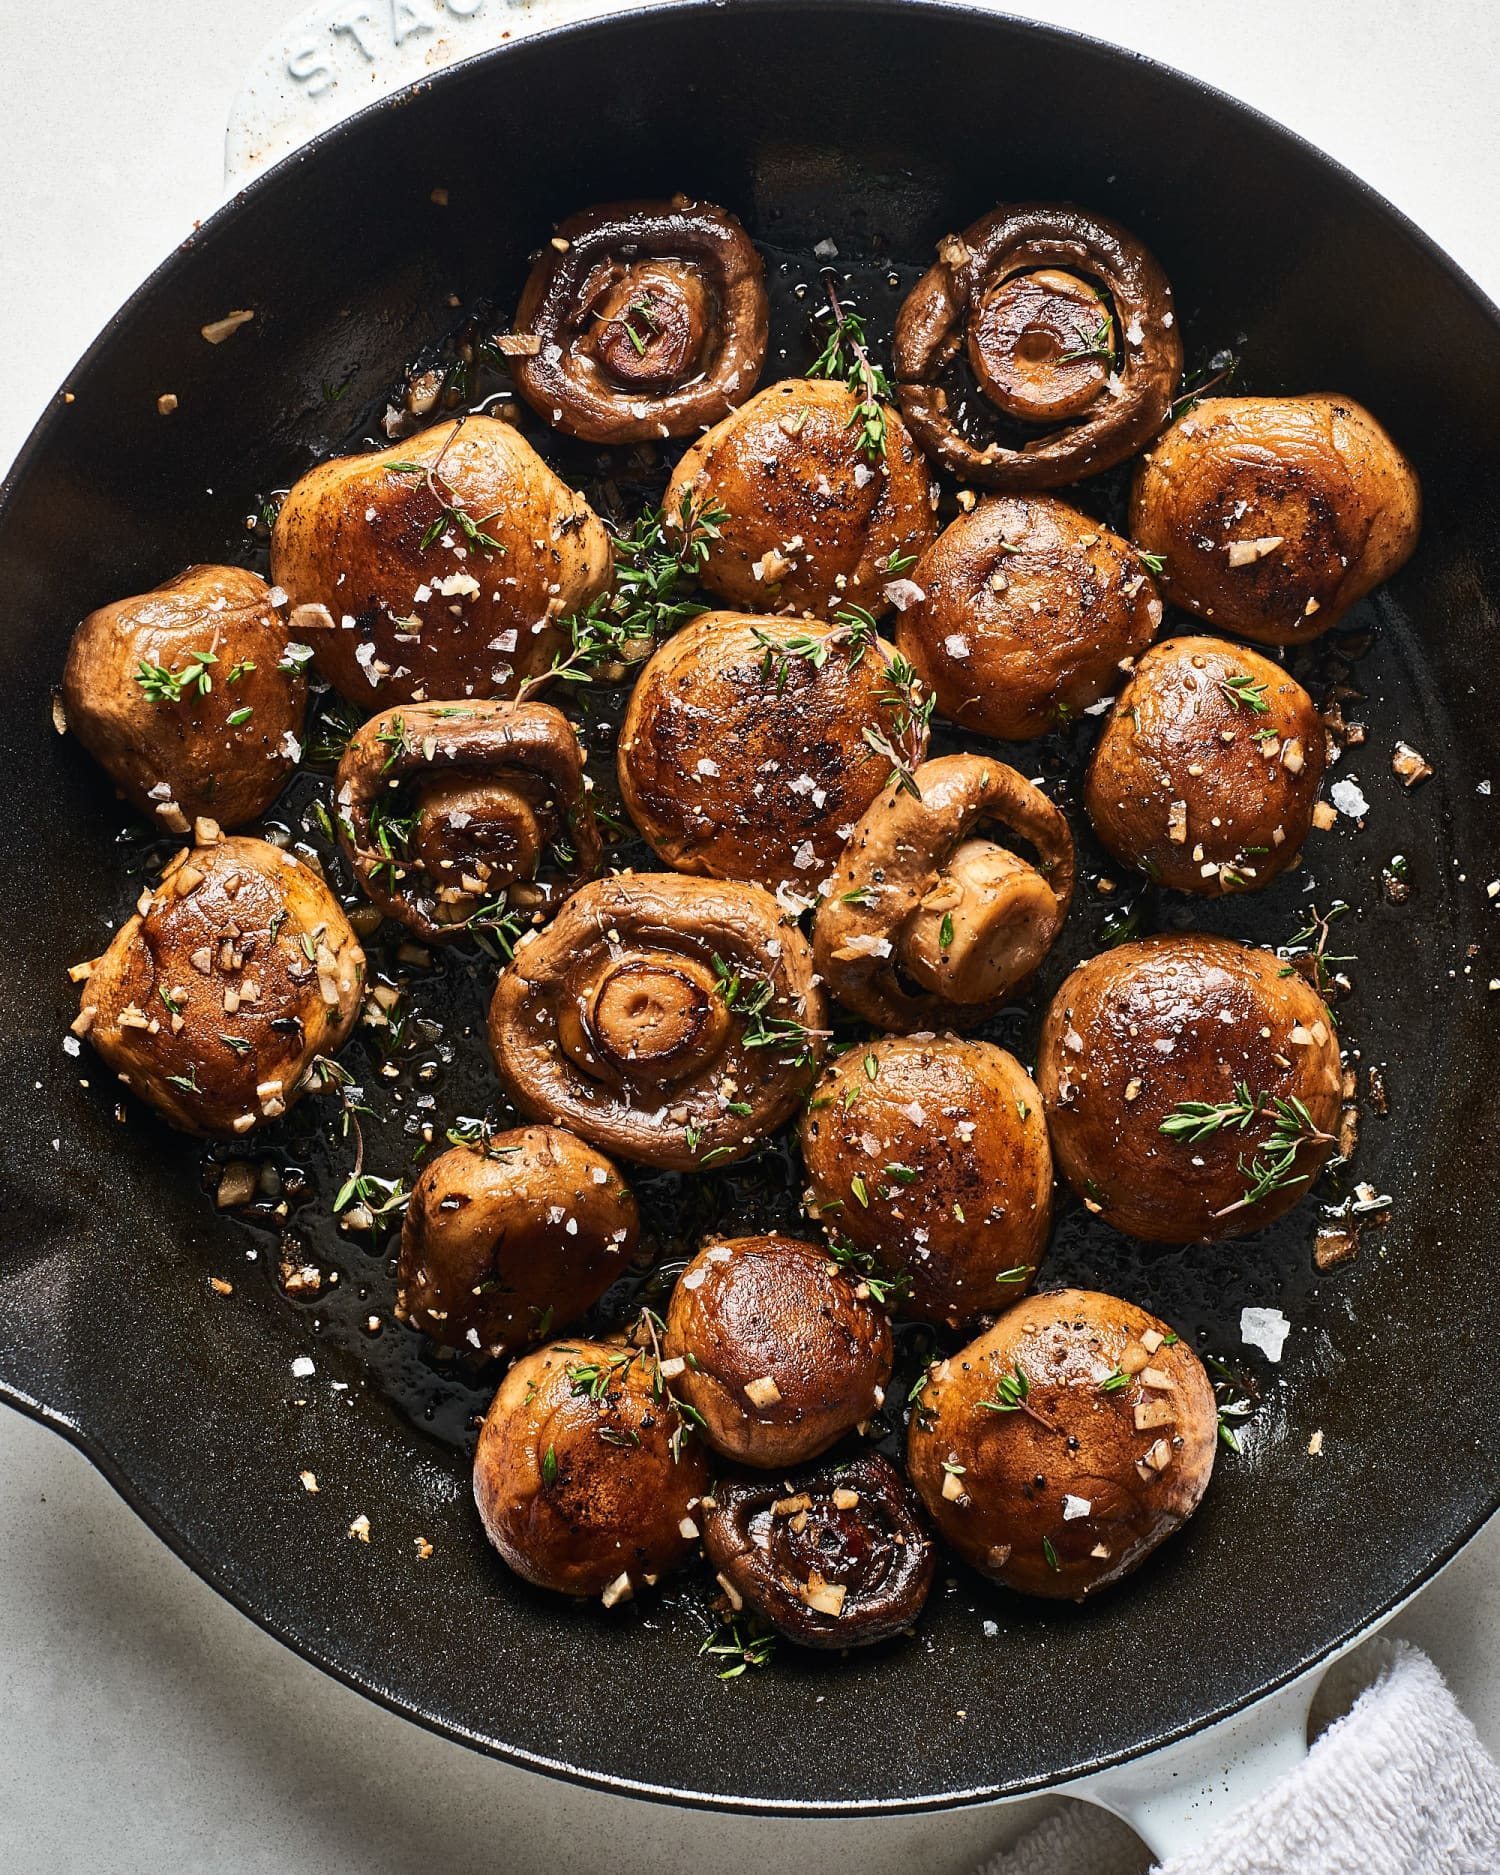 Recipe: Easy 15-Minute Garlic Butter Mushrooms — Recipes from The Kitchn